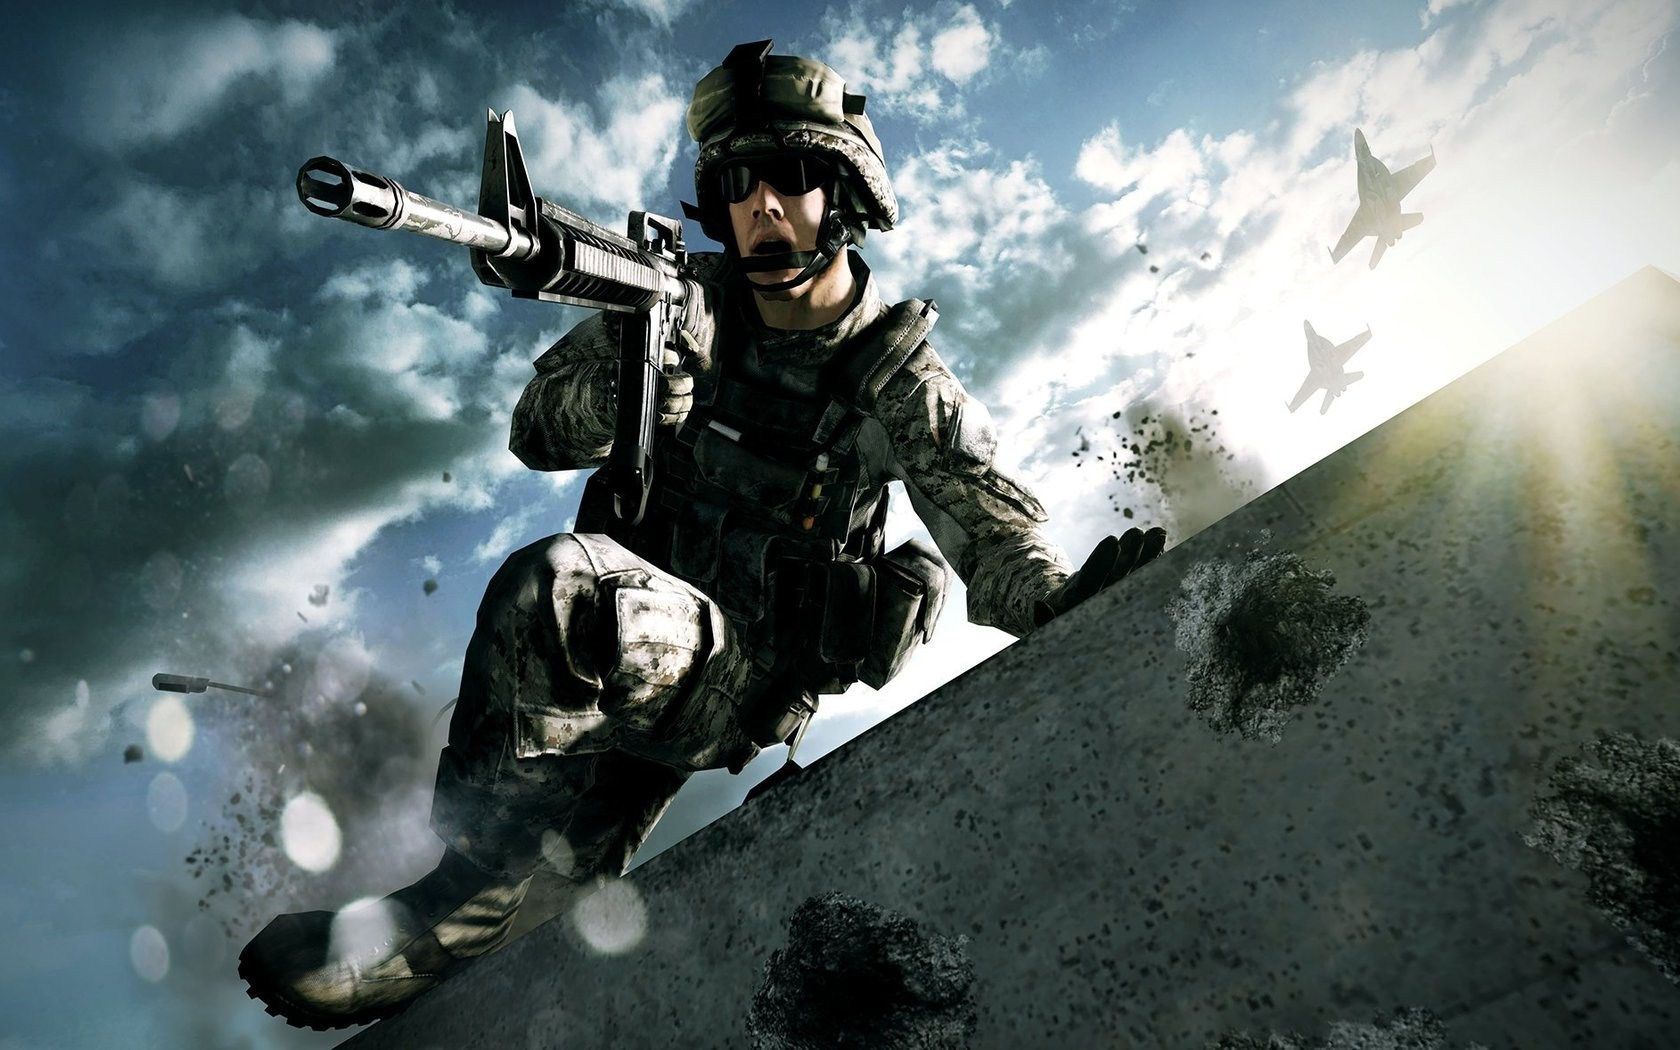 Soldier Wallpaper 13517